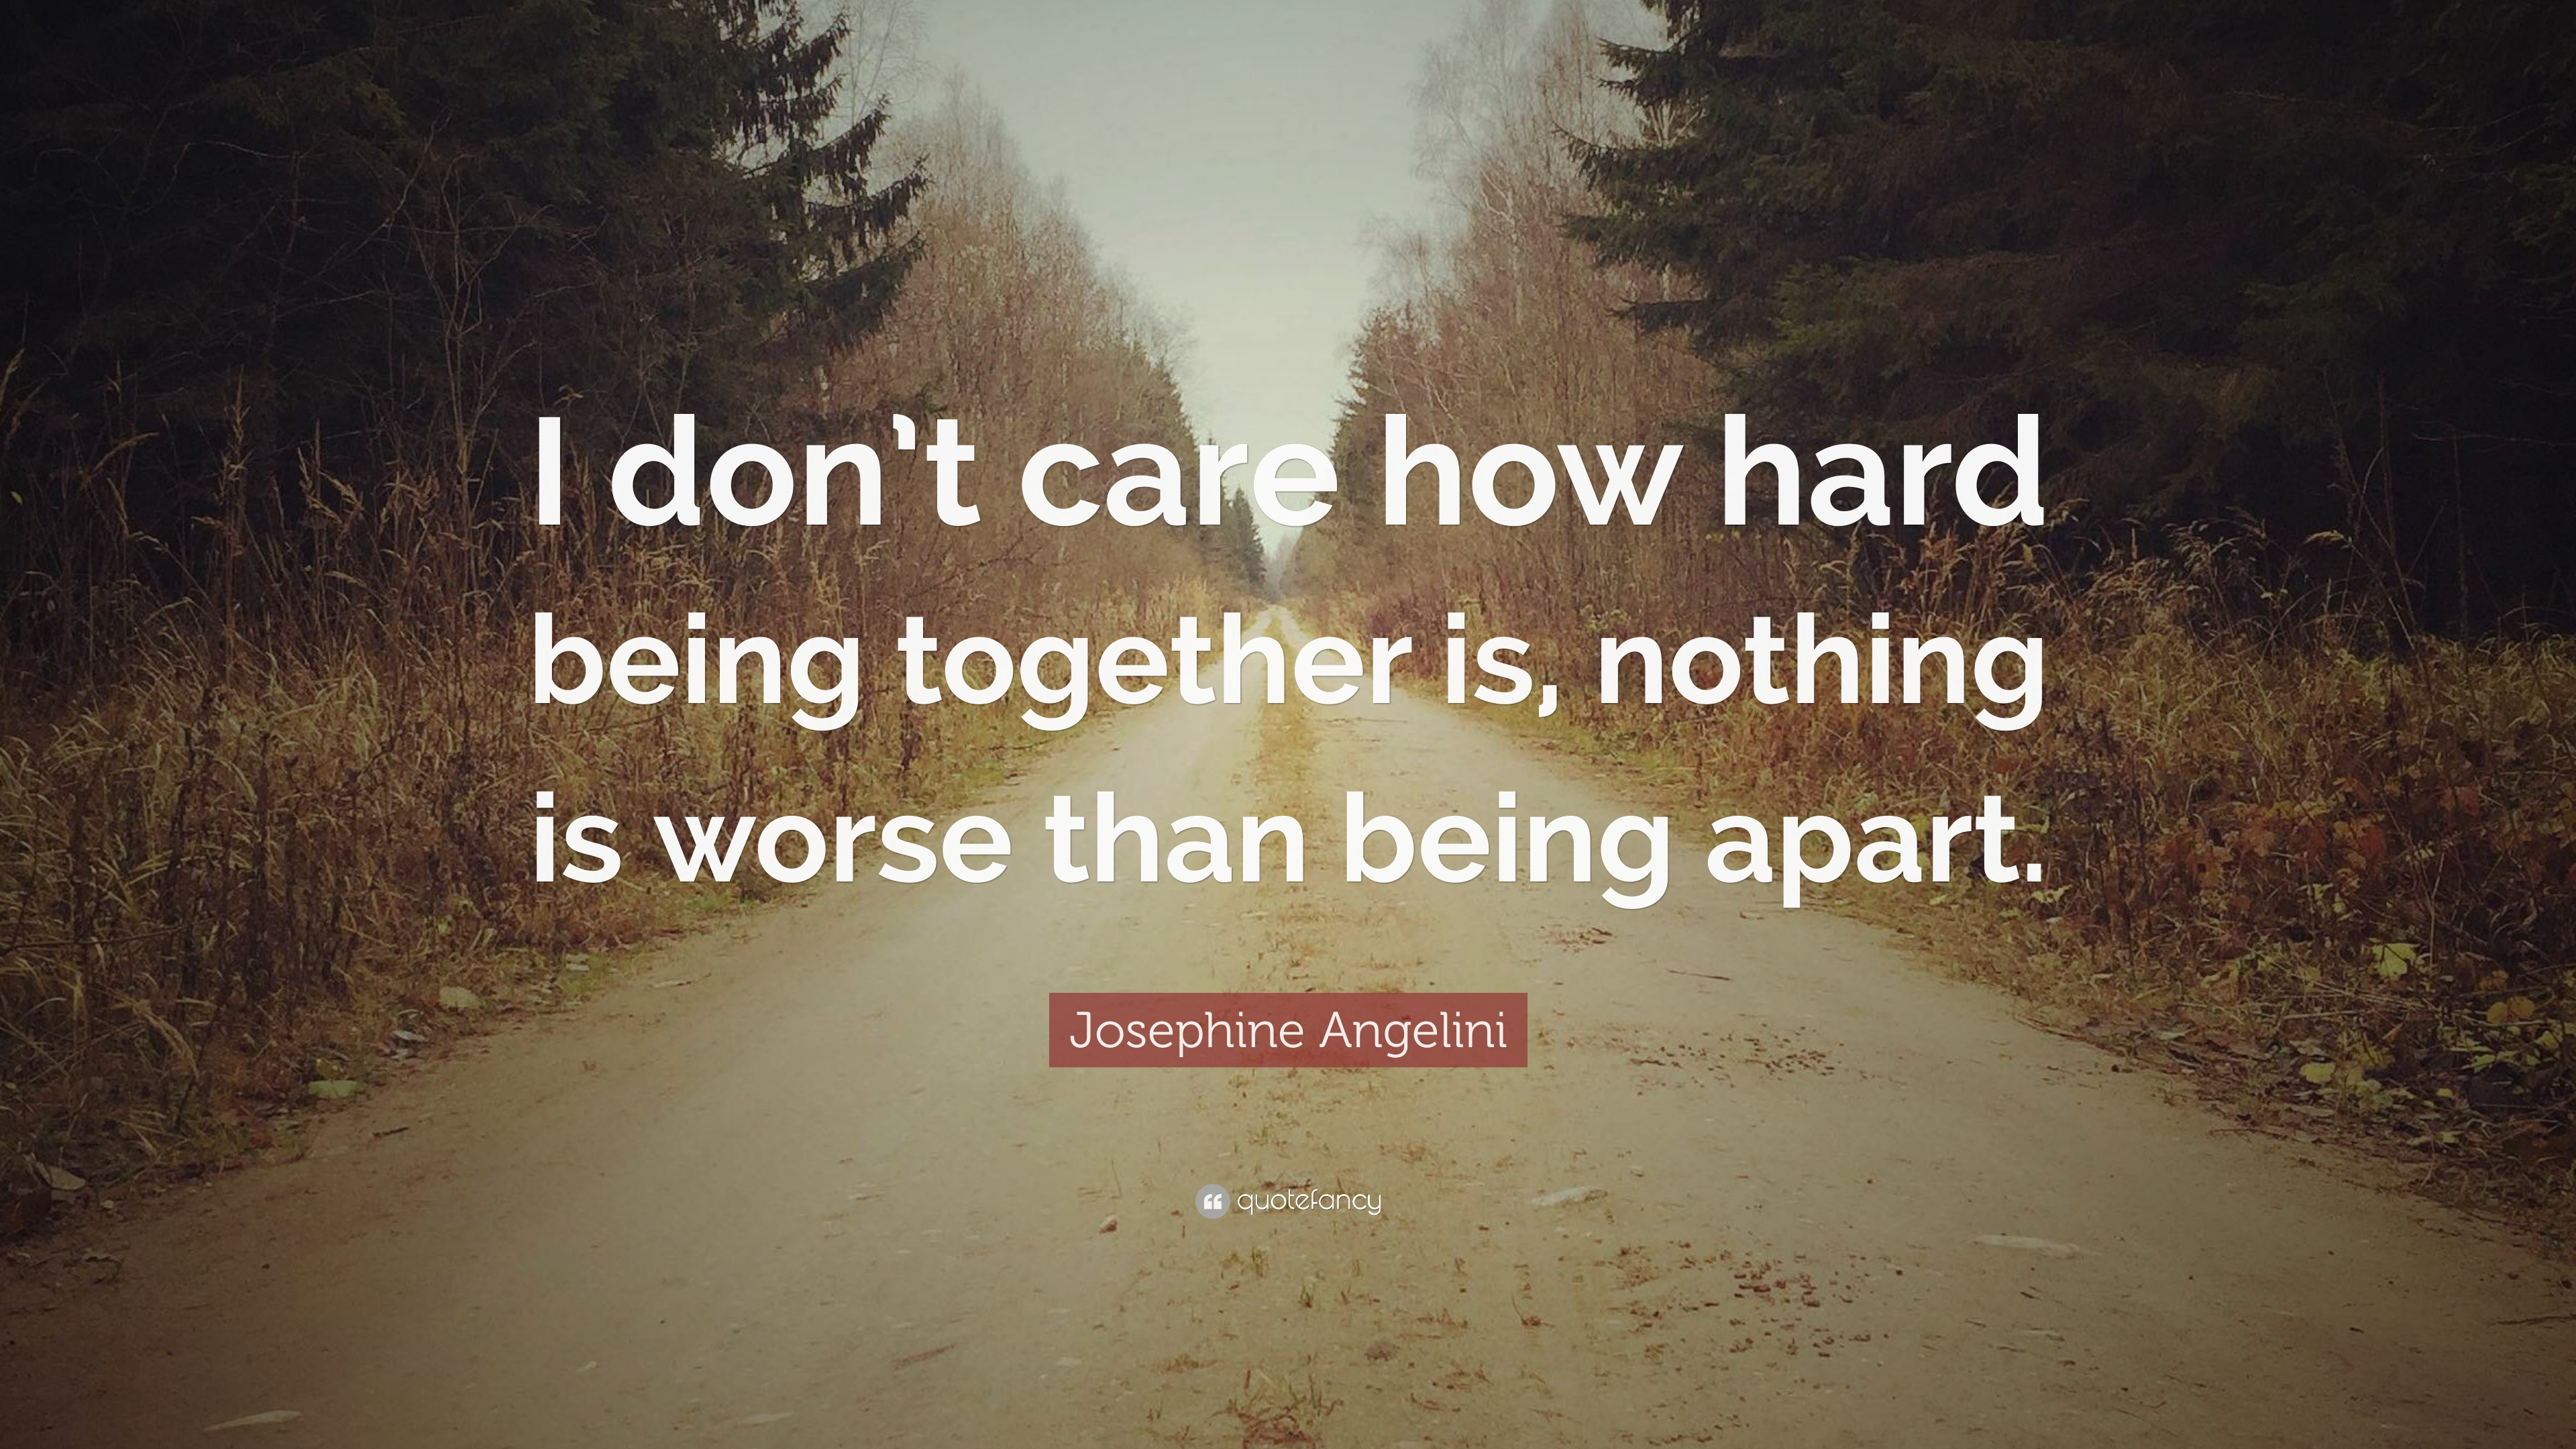 Being Together Quotes Josephine Angelini Quotes 20 Wallpapers  Quotefancy